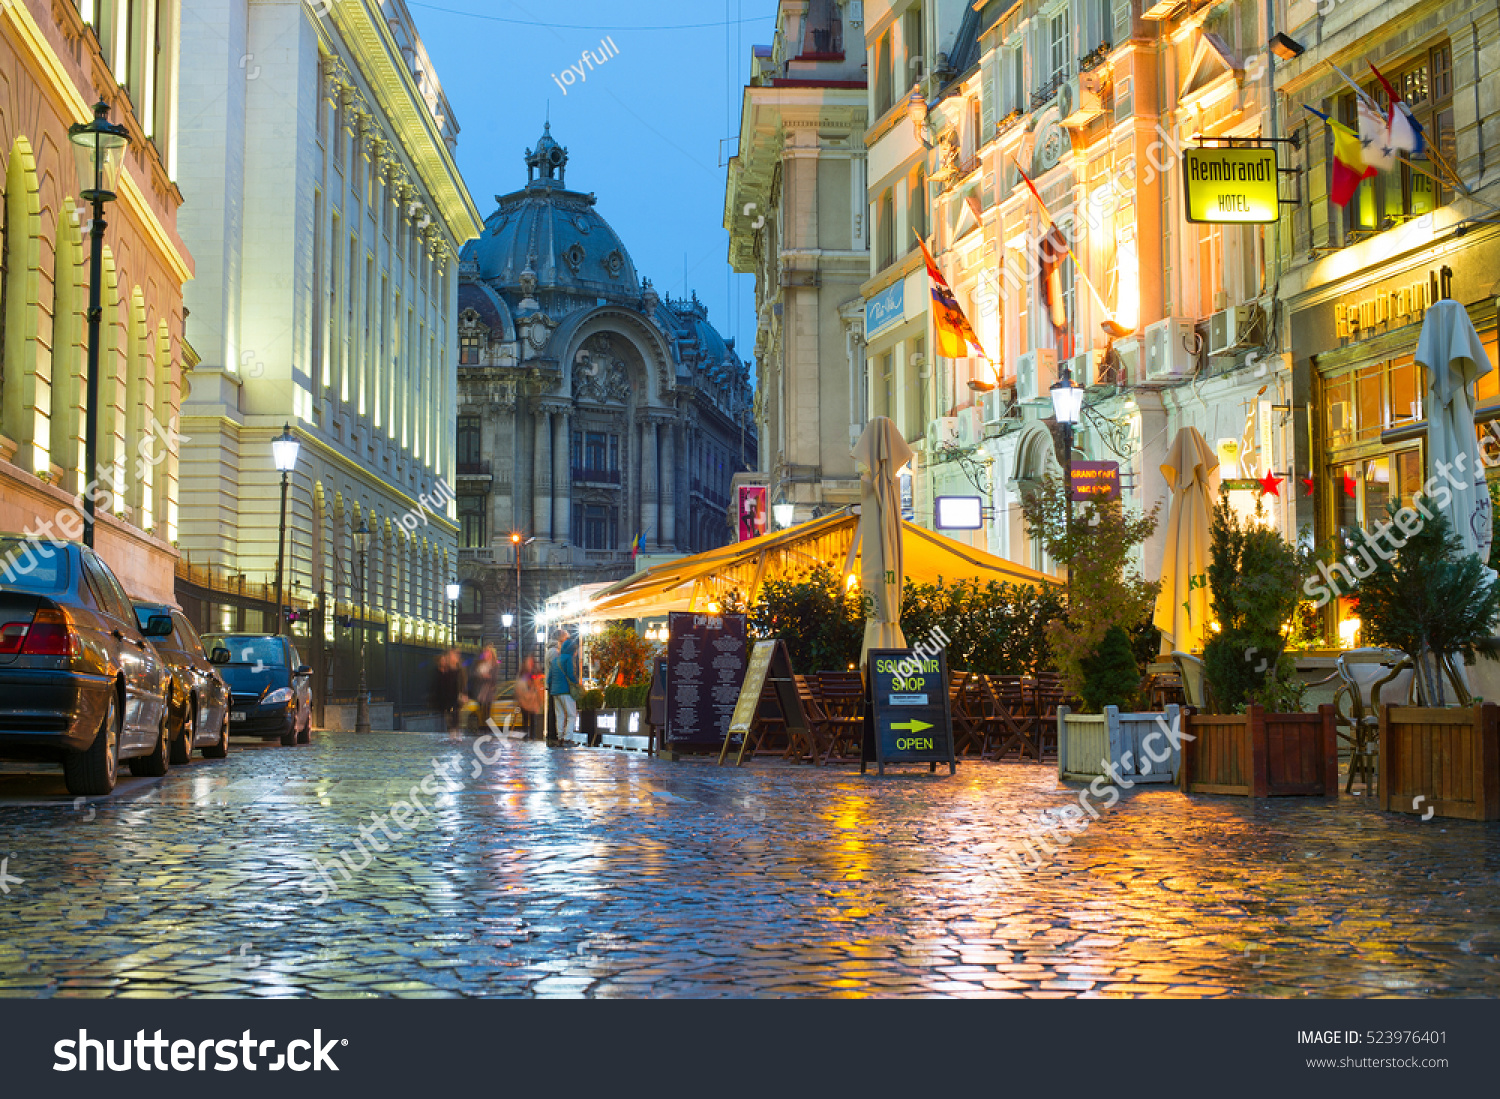 Bucharest Town Editorial Image Image Of Bucharest: Bucharest Romania Oct 10 2016 Old Stock Photo 523976401